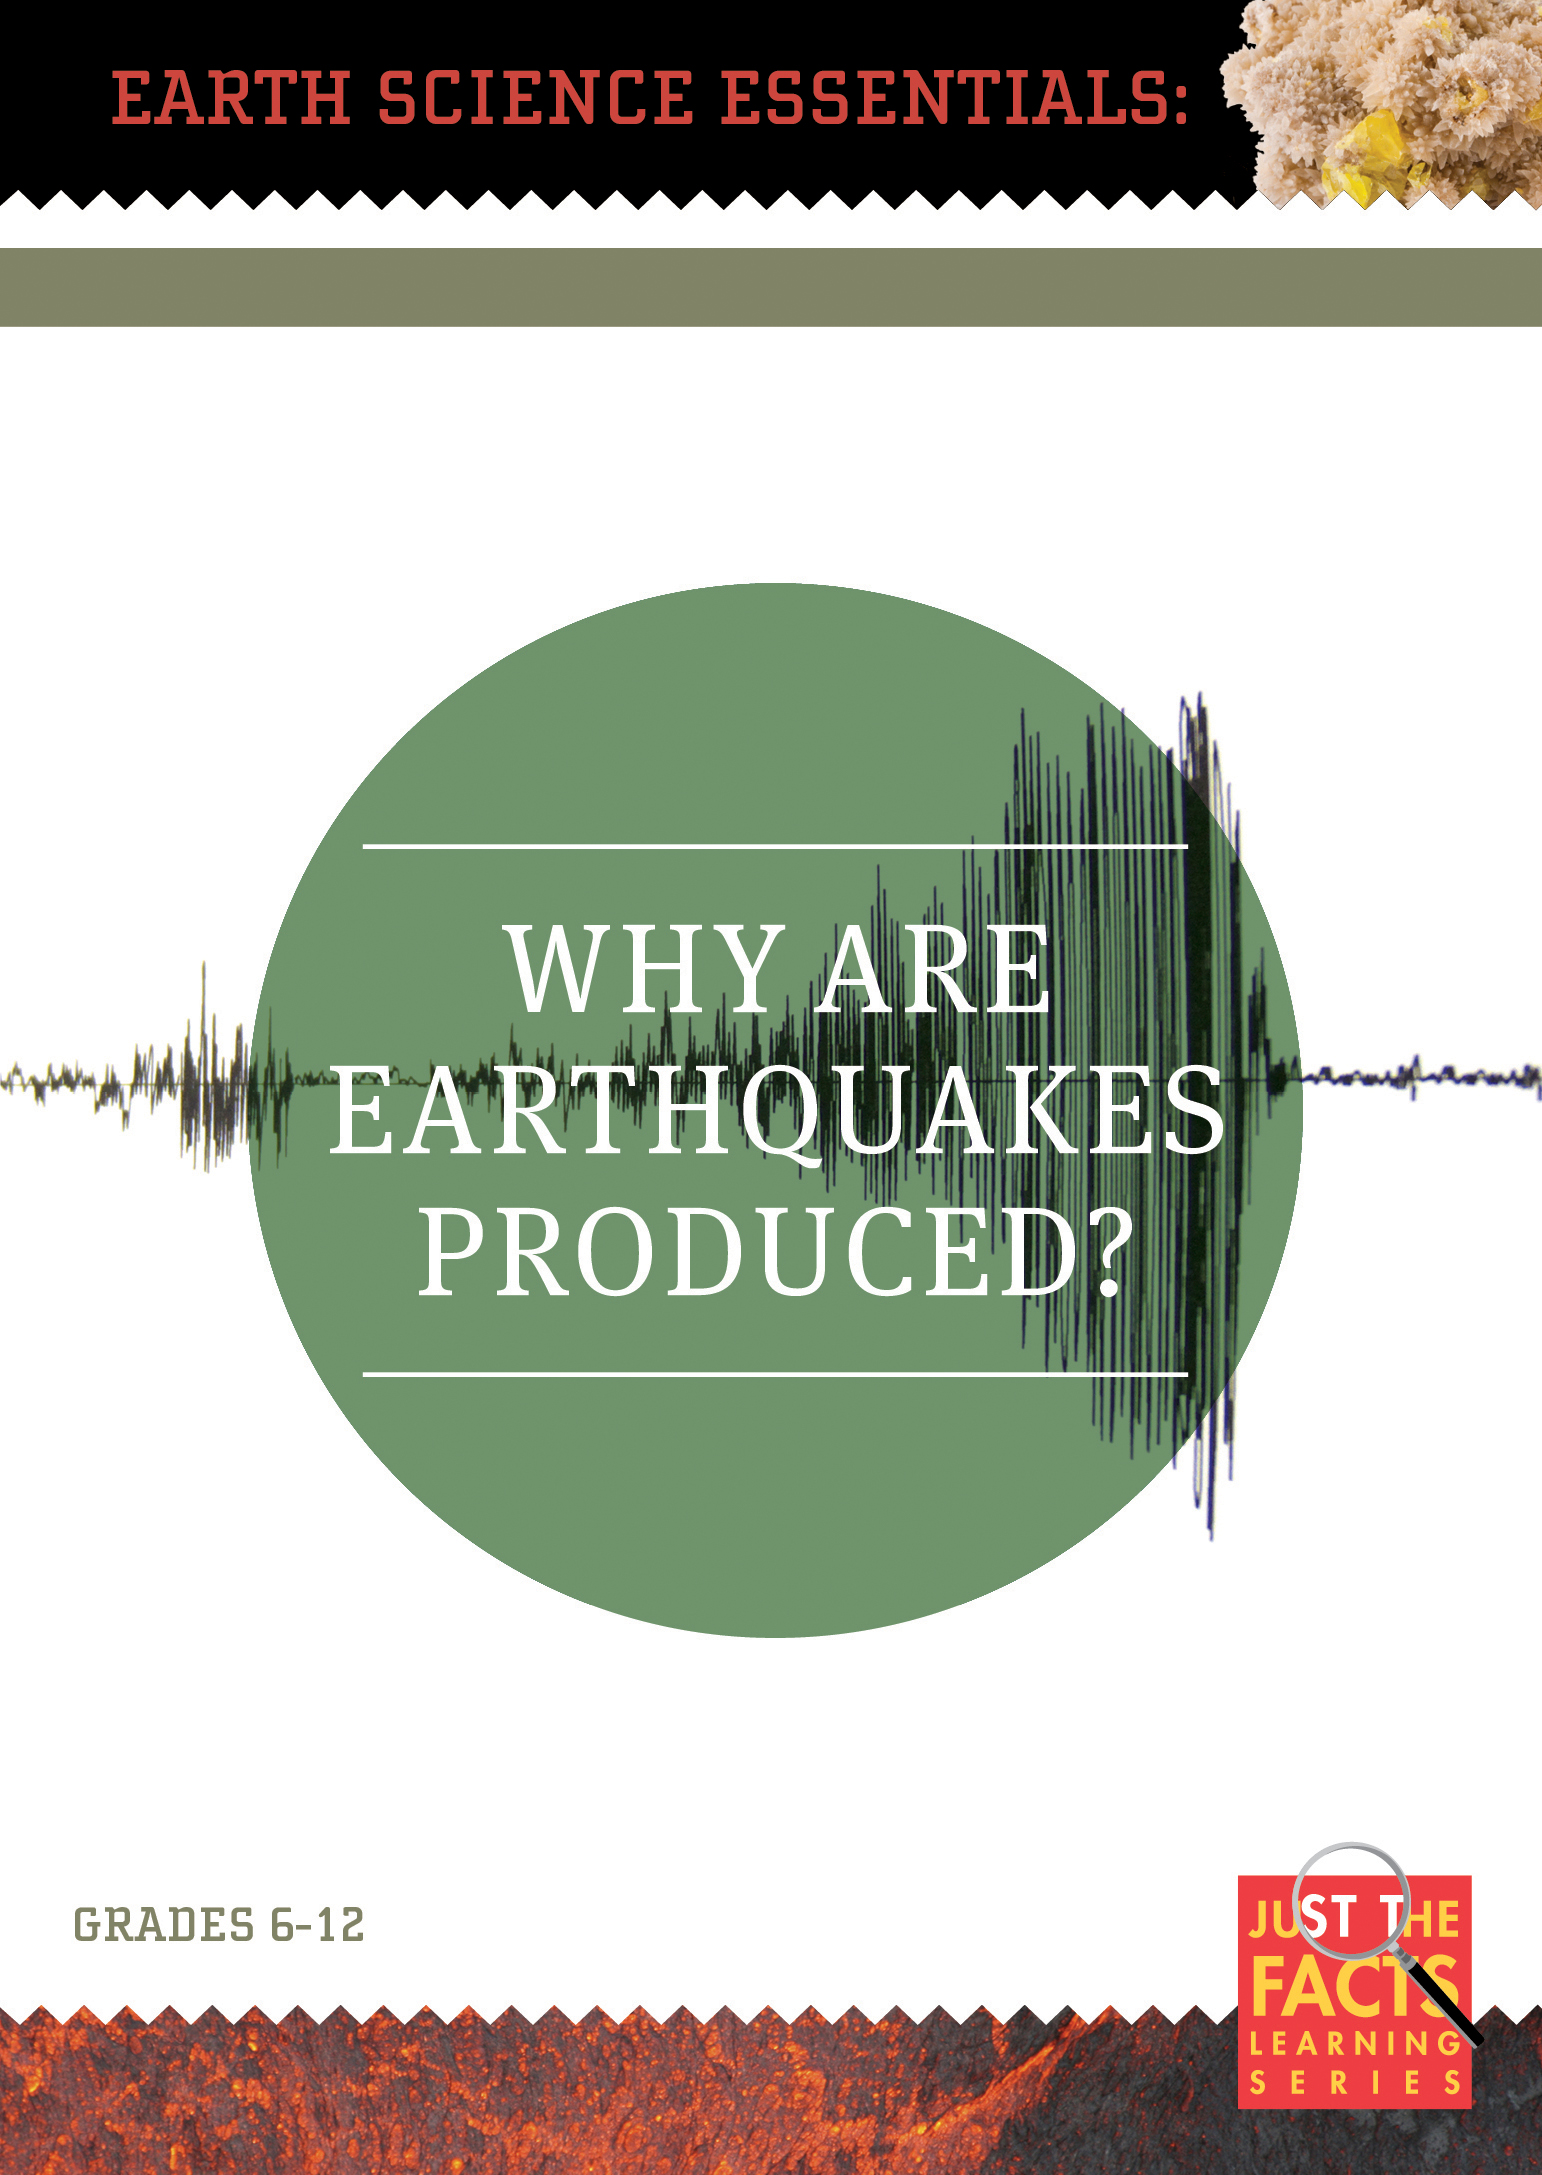 Earth Science Essentials: Why Are Earthquakes Produced?